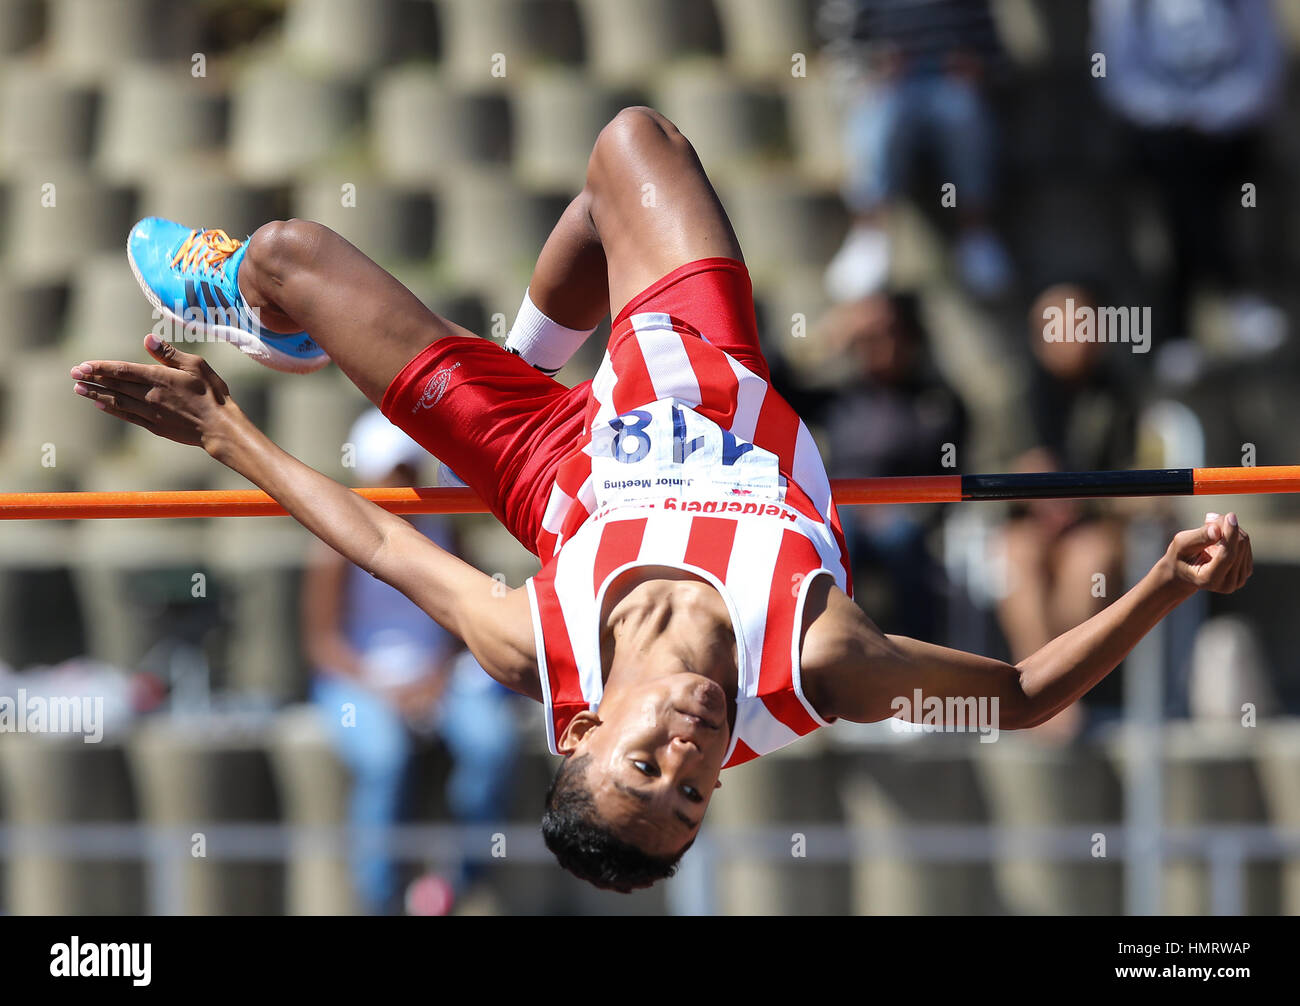 L'athlétisme local réunion à Cape Town, Cape Town, Afrique du Sud Photo Stock